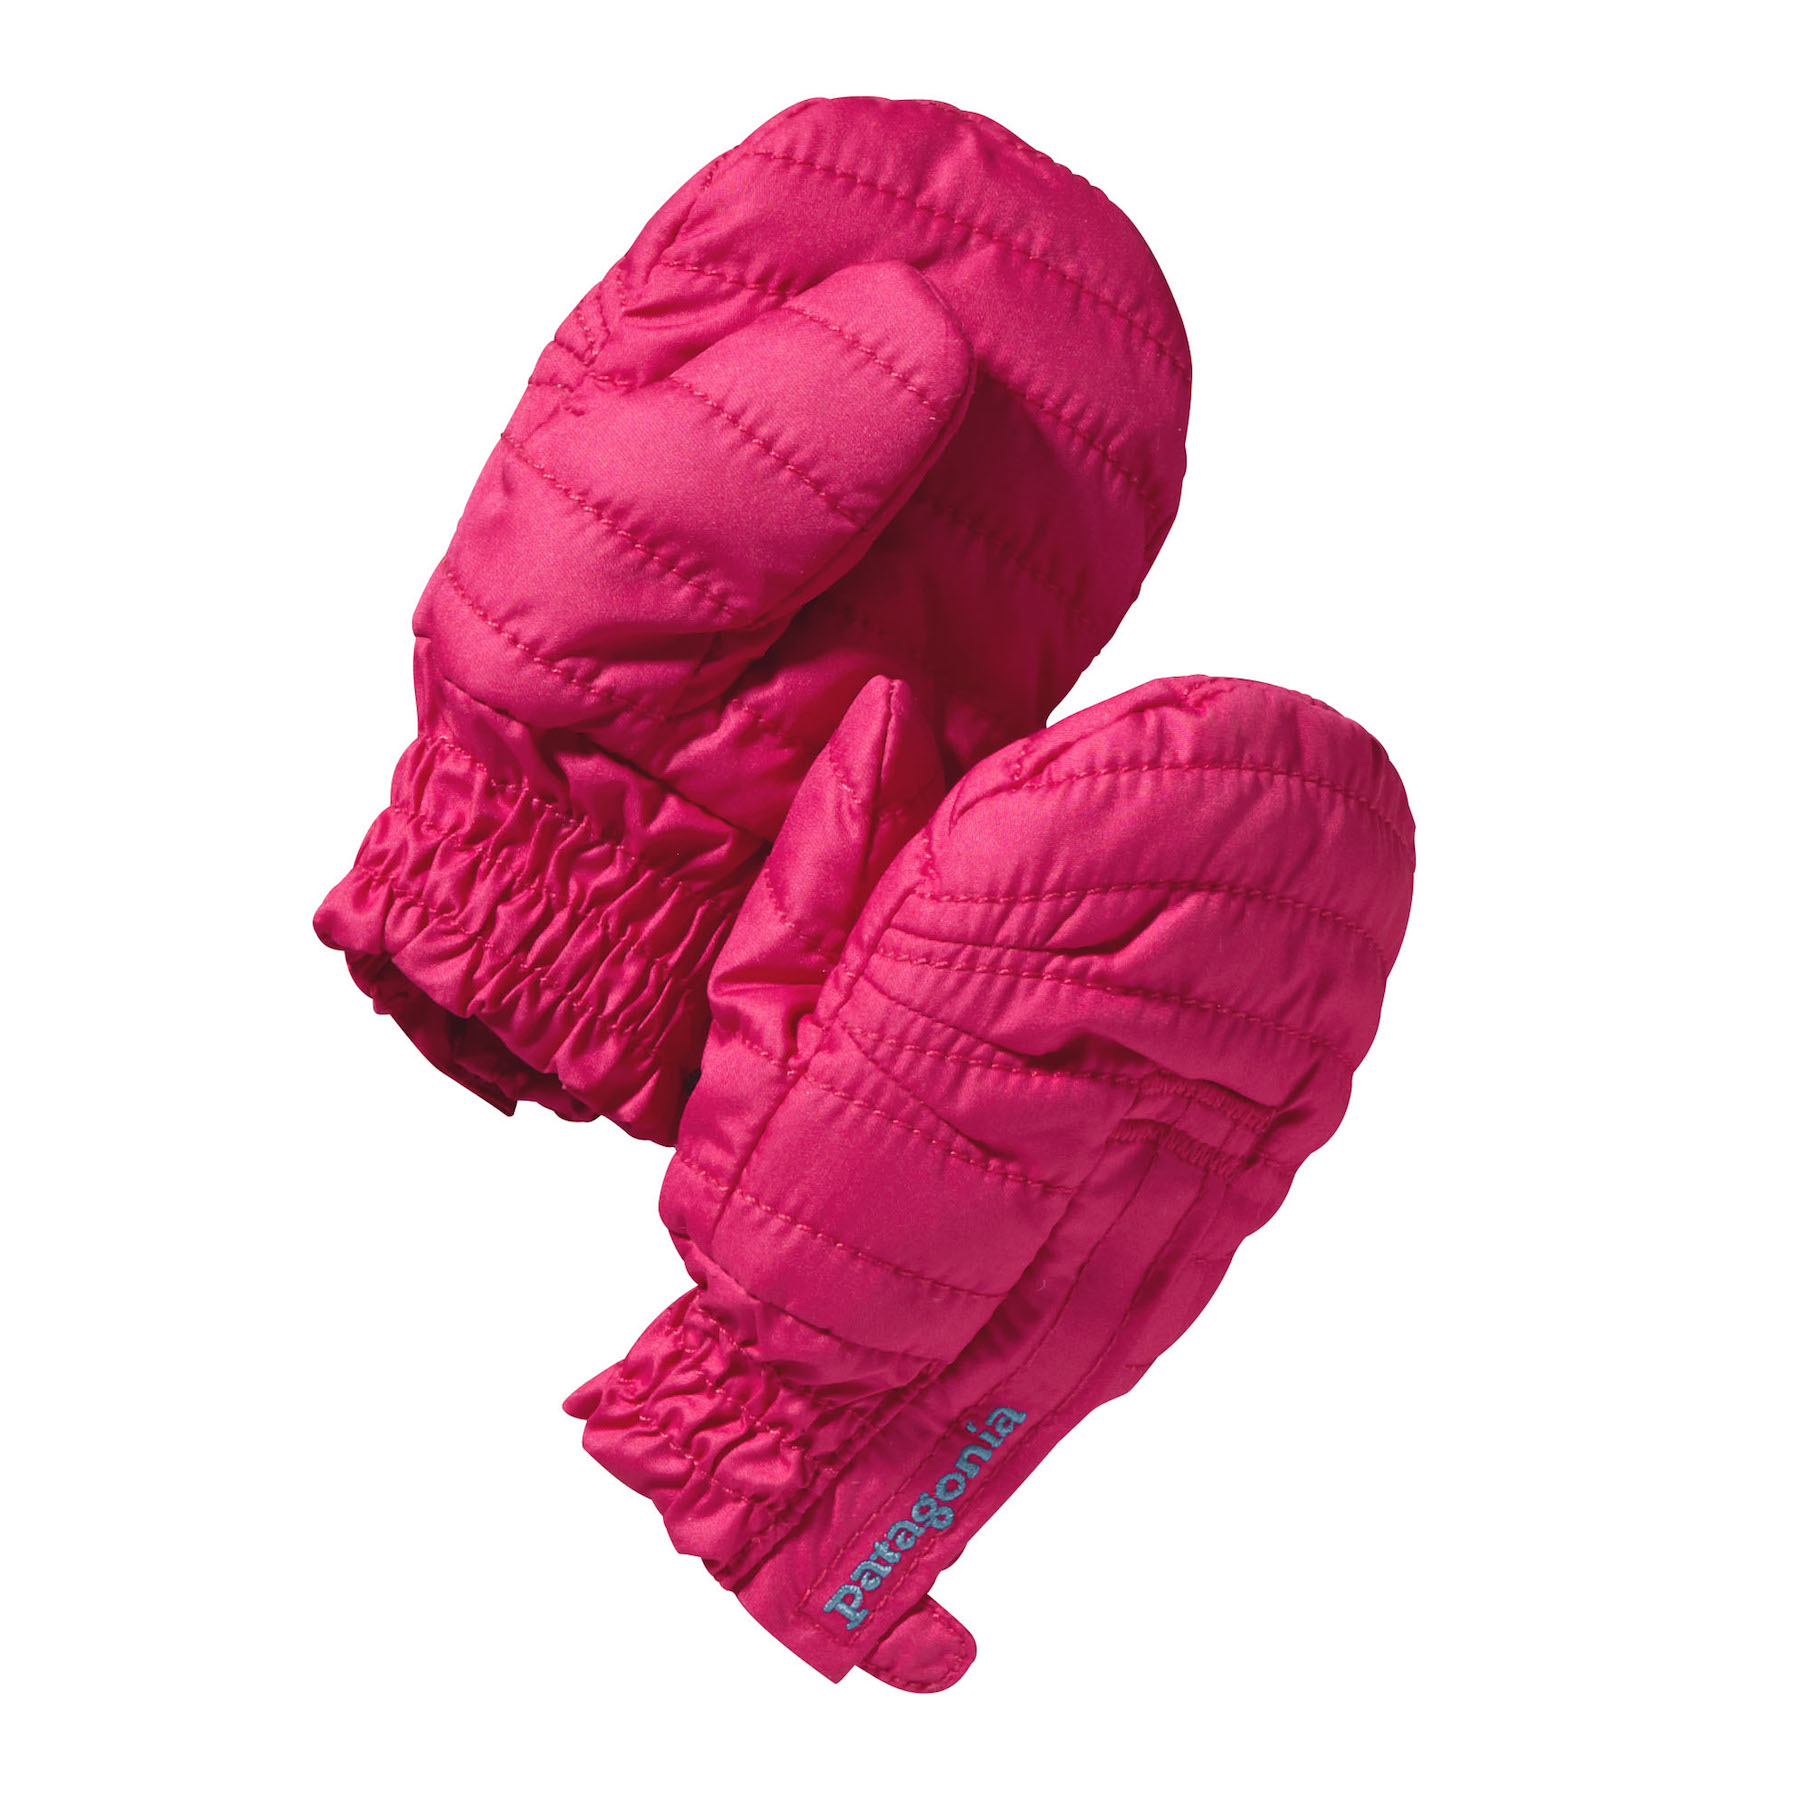 Patagonia Baby Puff Mitts - Moufles enfant